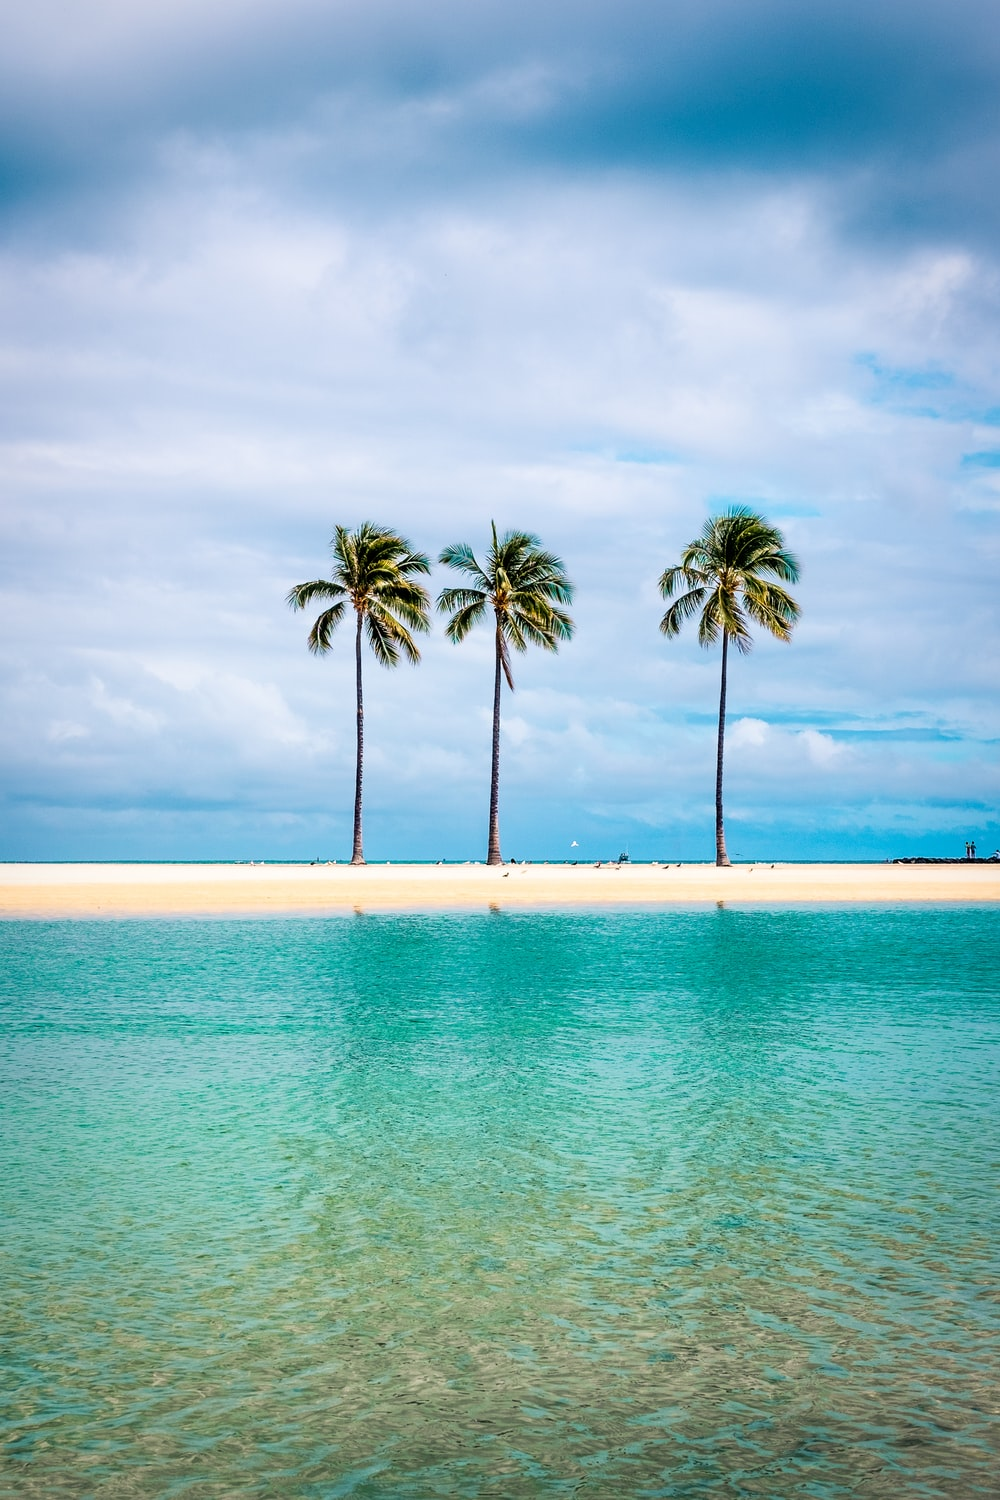 palm trees on beach shore under cloudy sky during daytime